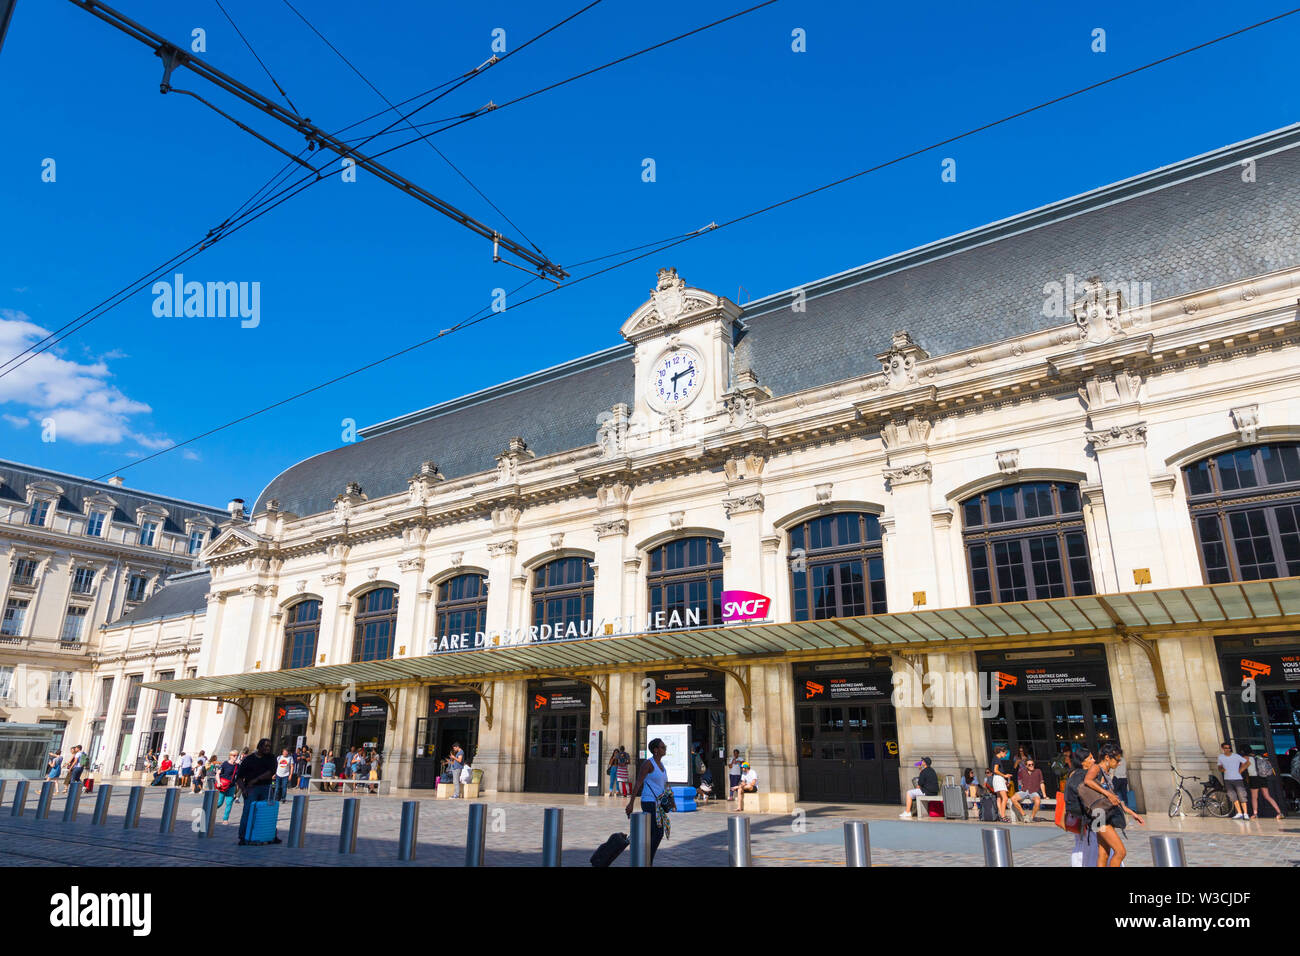 Bordeaux St-Jean front entry train station - Stock Image